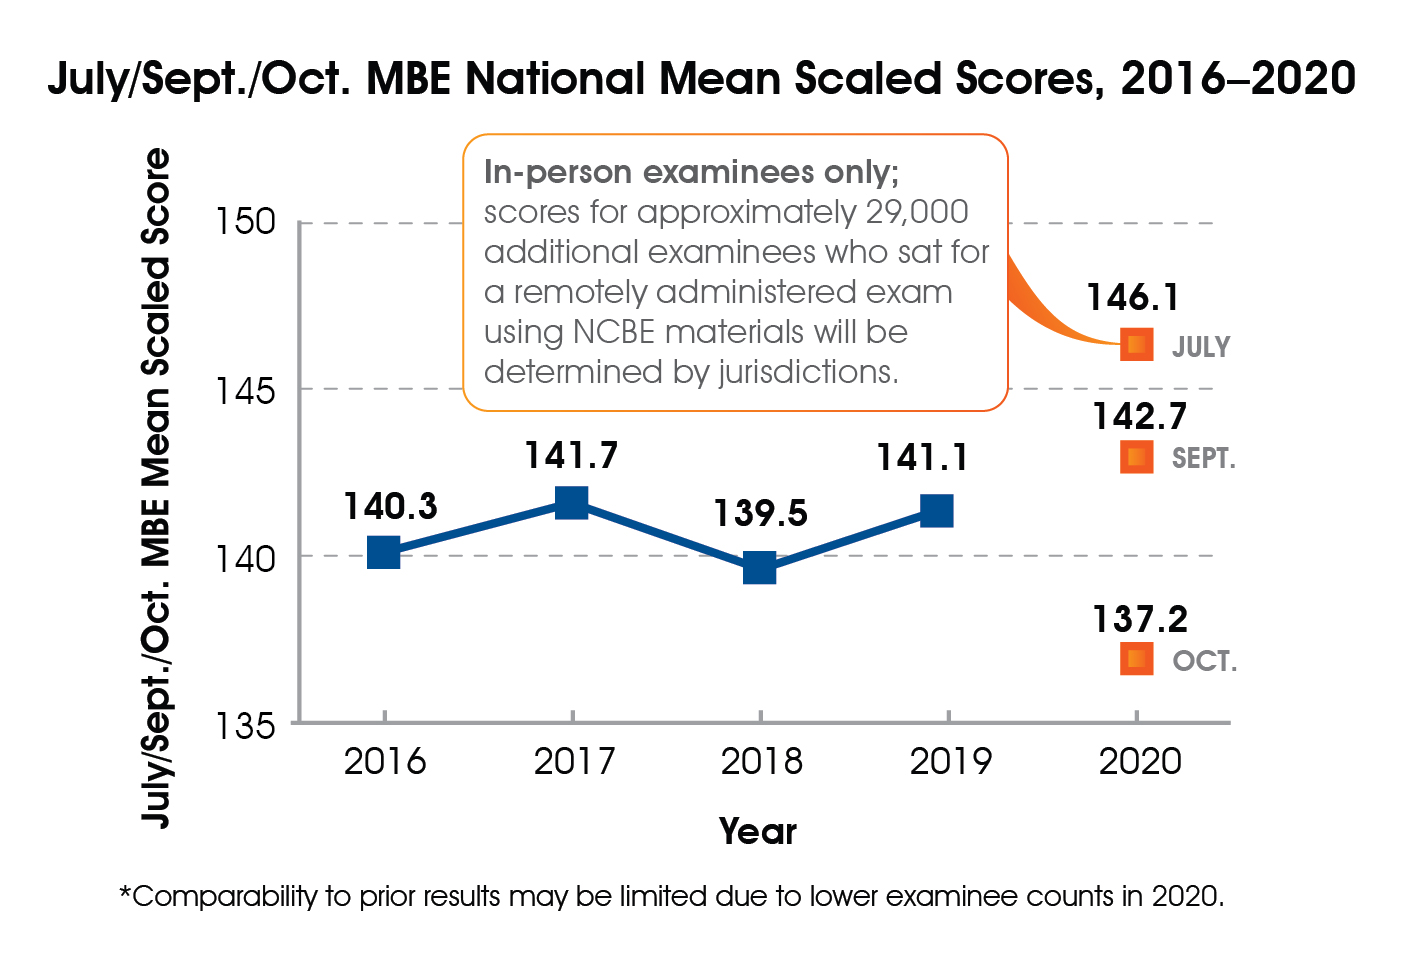 A line graph of July, September, and October MBE national mean scaled scores, 2016-2020. 2016 = 140.3; 2017 = 141.7; 2018 = 139.5; 2019 = 141.1; July 2020 = 146.1; September 2020 = 142.7; October 2020 = 137.2. Scores for approximately 29,000 additional examinees who sat for a remotely administered exam using NCBE materials in October 2020 will be determined by jurisdictions.